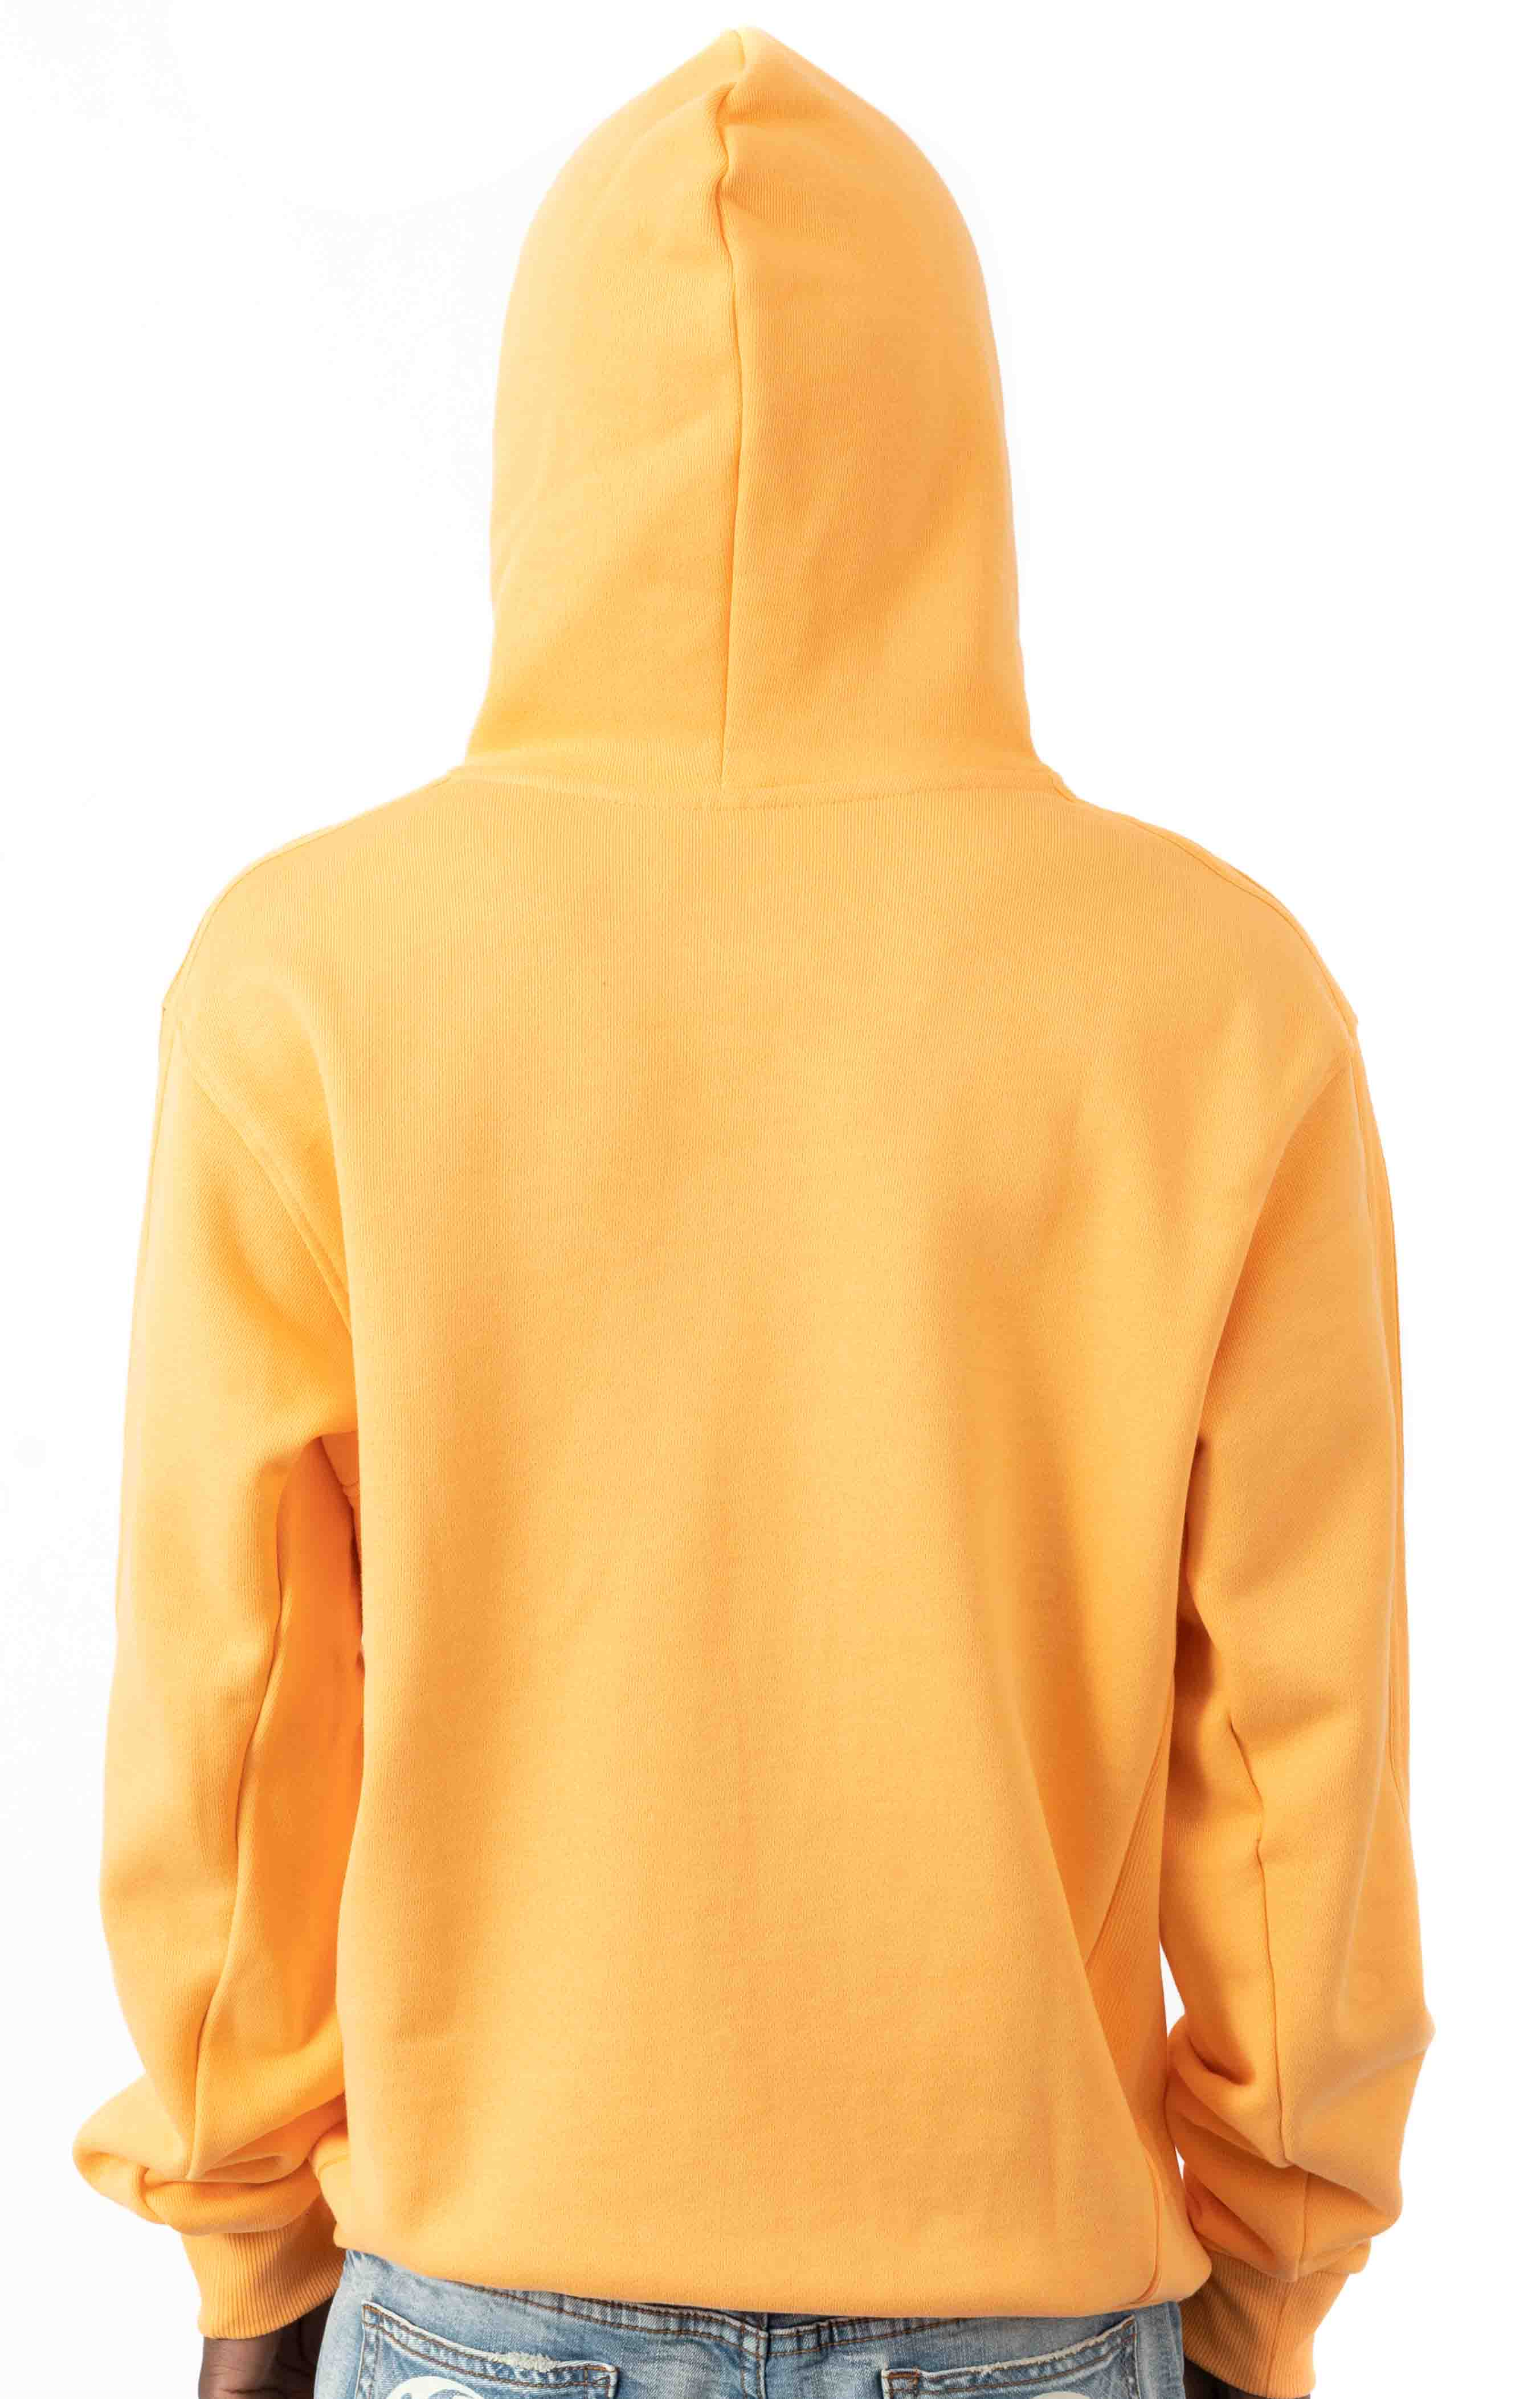 Heavyweight Shmoo Pullover Hoodie - Hazy Orange/White 3